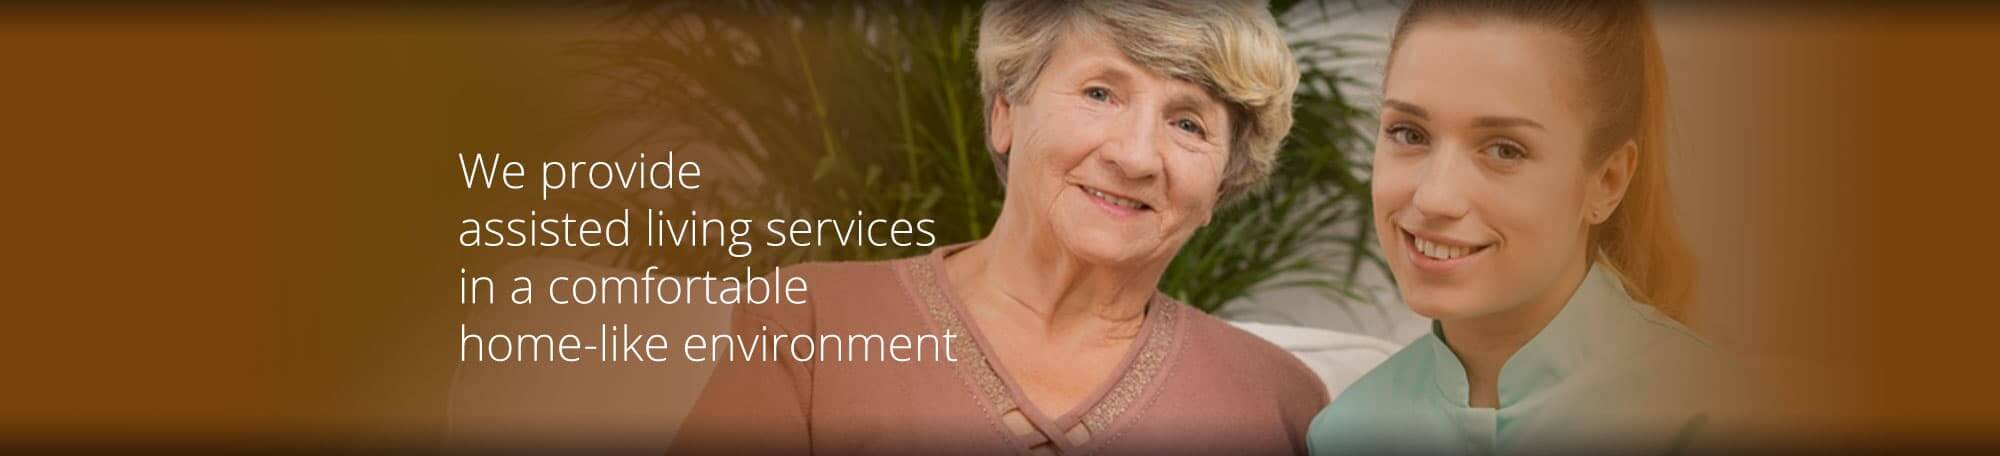 Seguin Assisted Living Services - Seasons Alzheimer's Care and Assisted Living